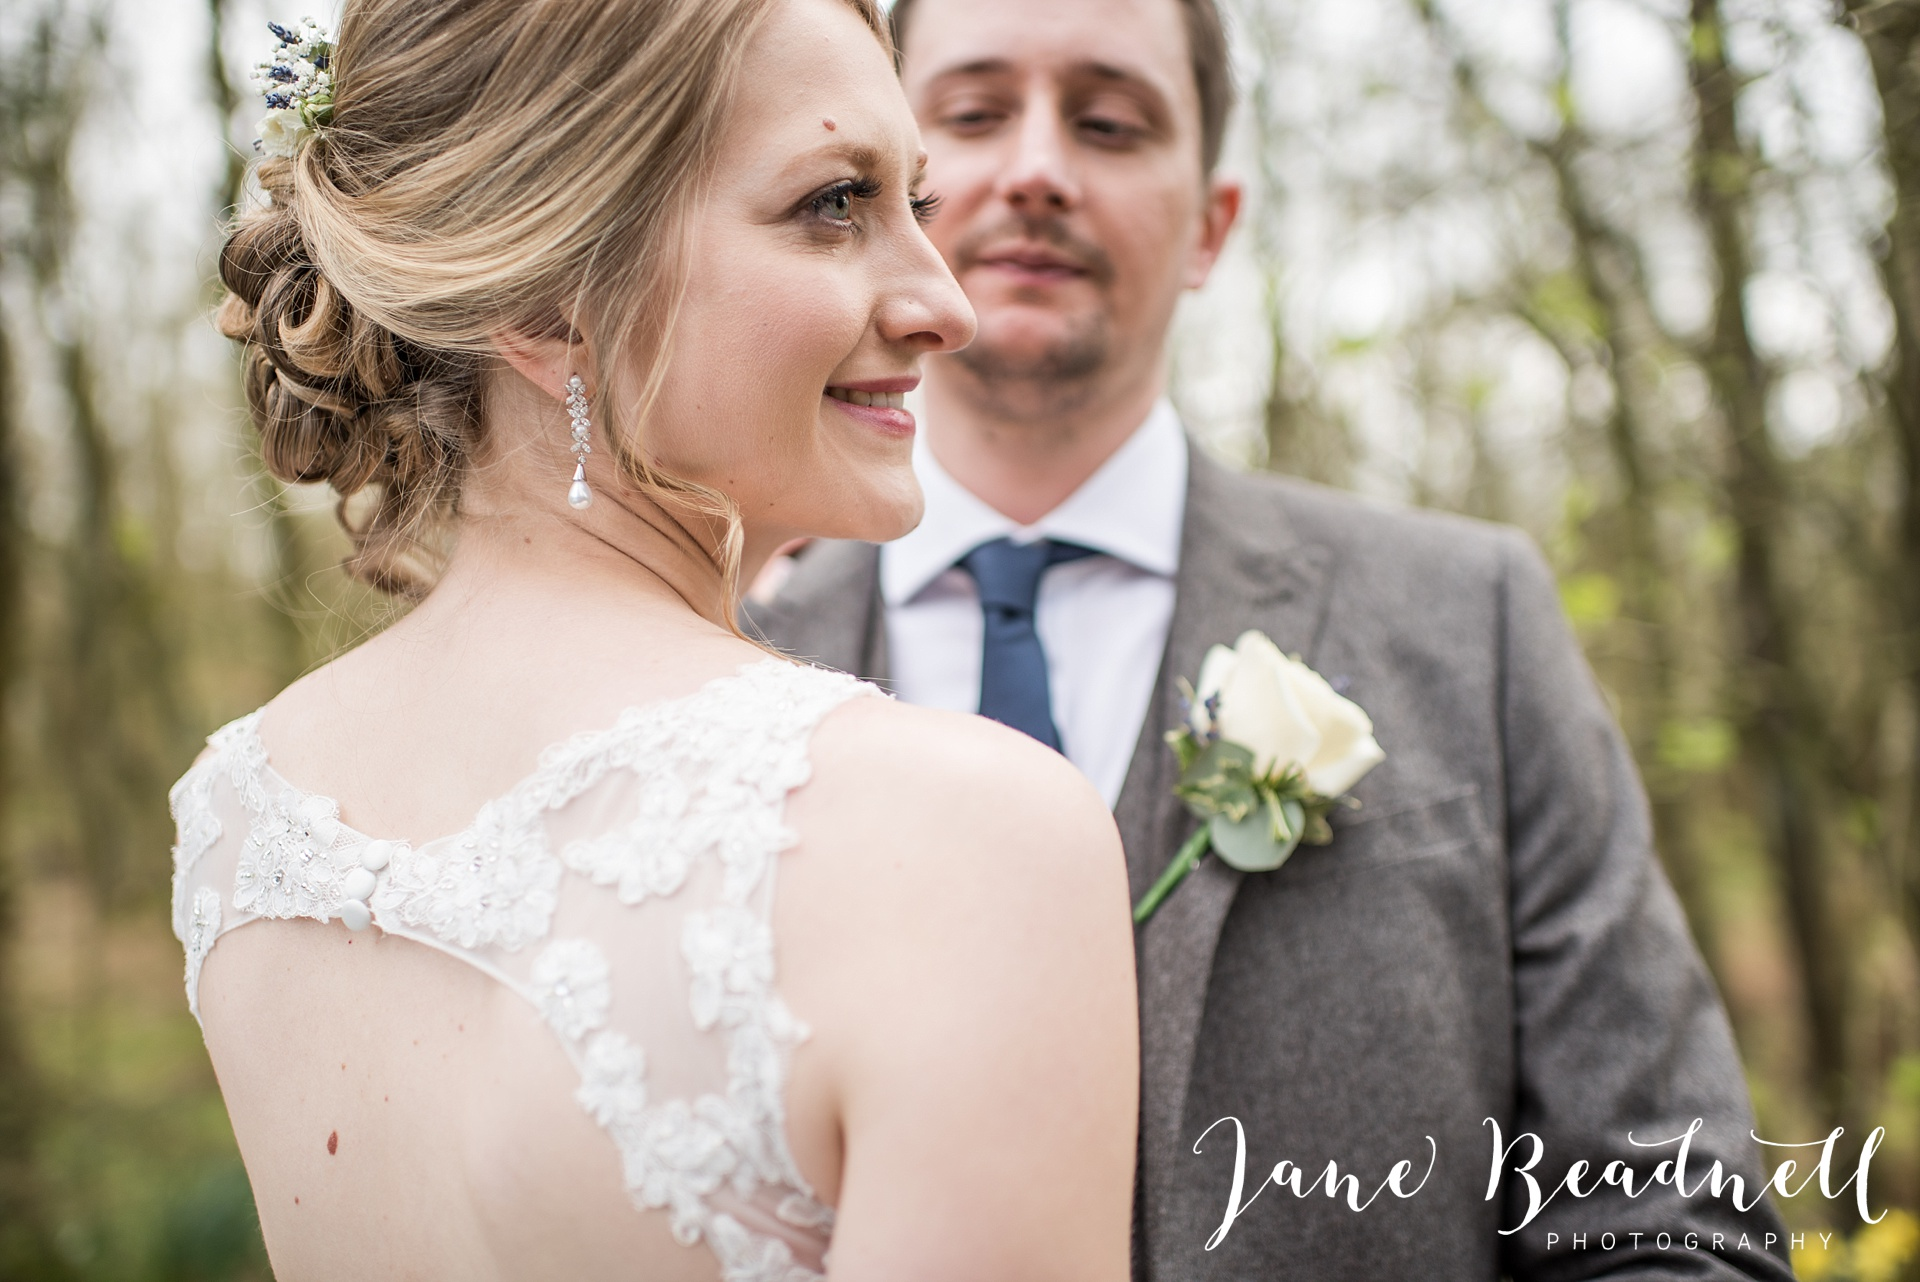 Otley Chevin Lodge wedding photography by Jane Beadnell Photography Leeds_0093